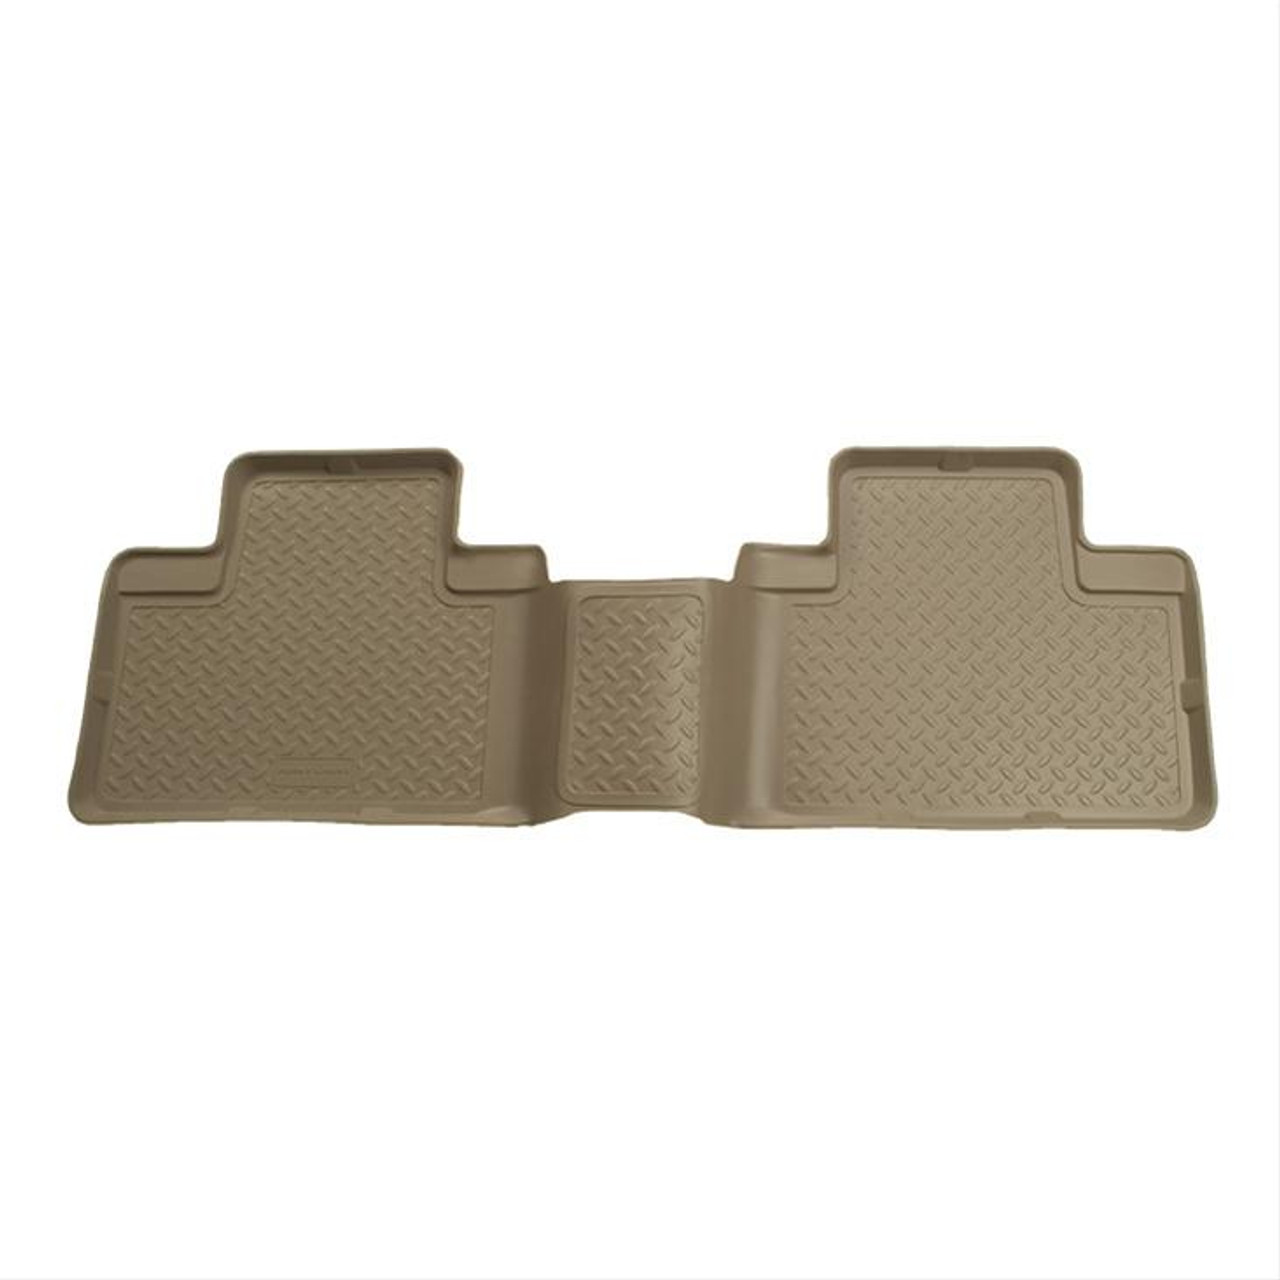 04-14 ARMADA 2ND SEAT 1PC CLASSIC FLOOR LINER TAN